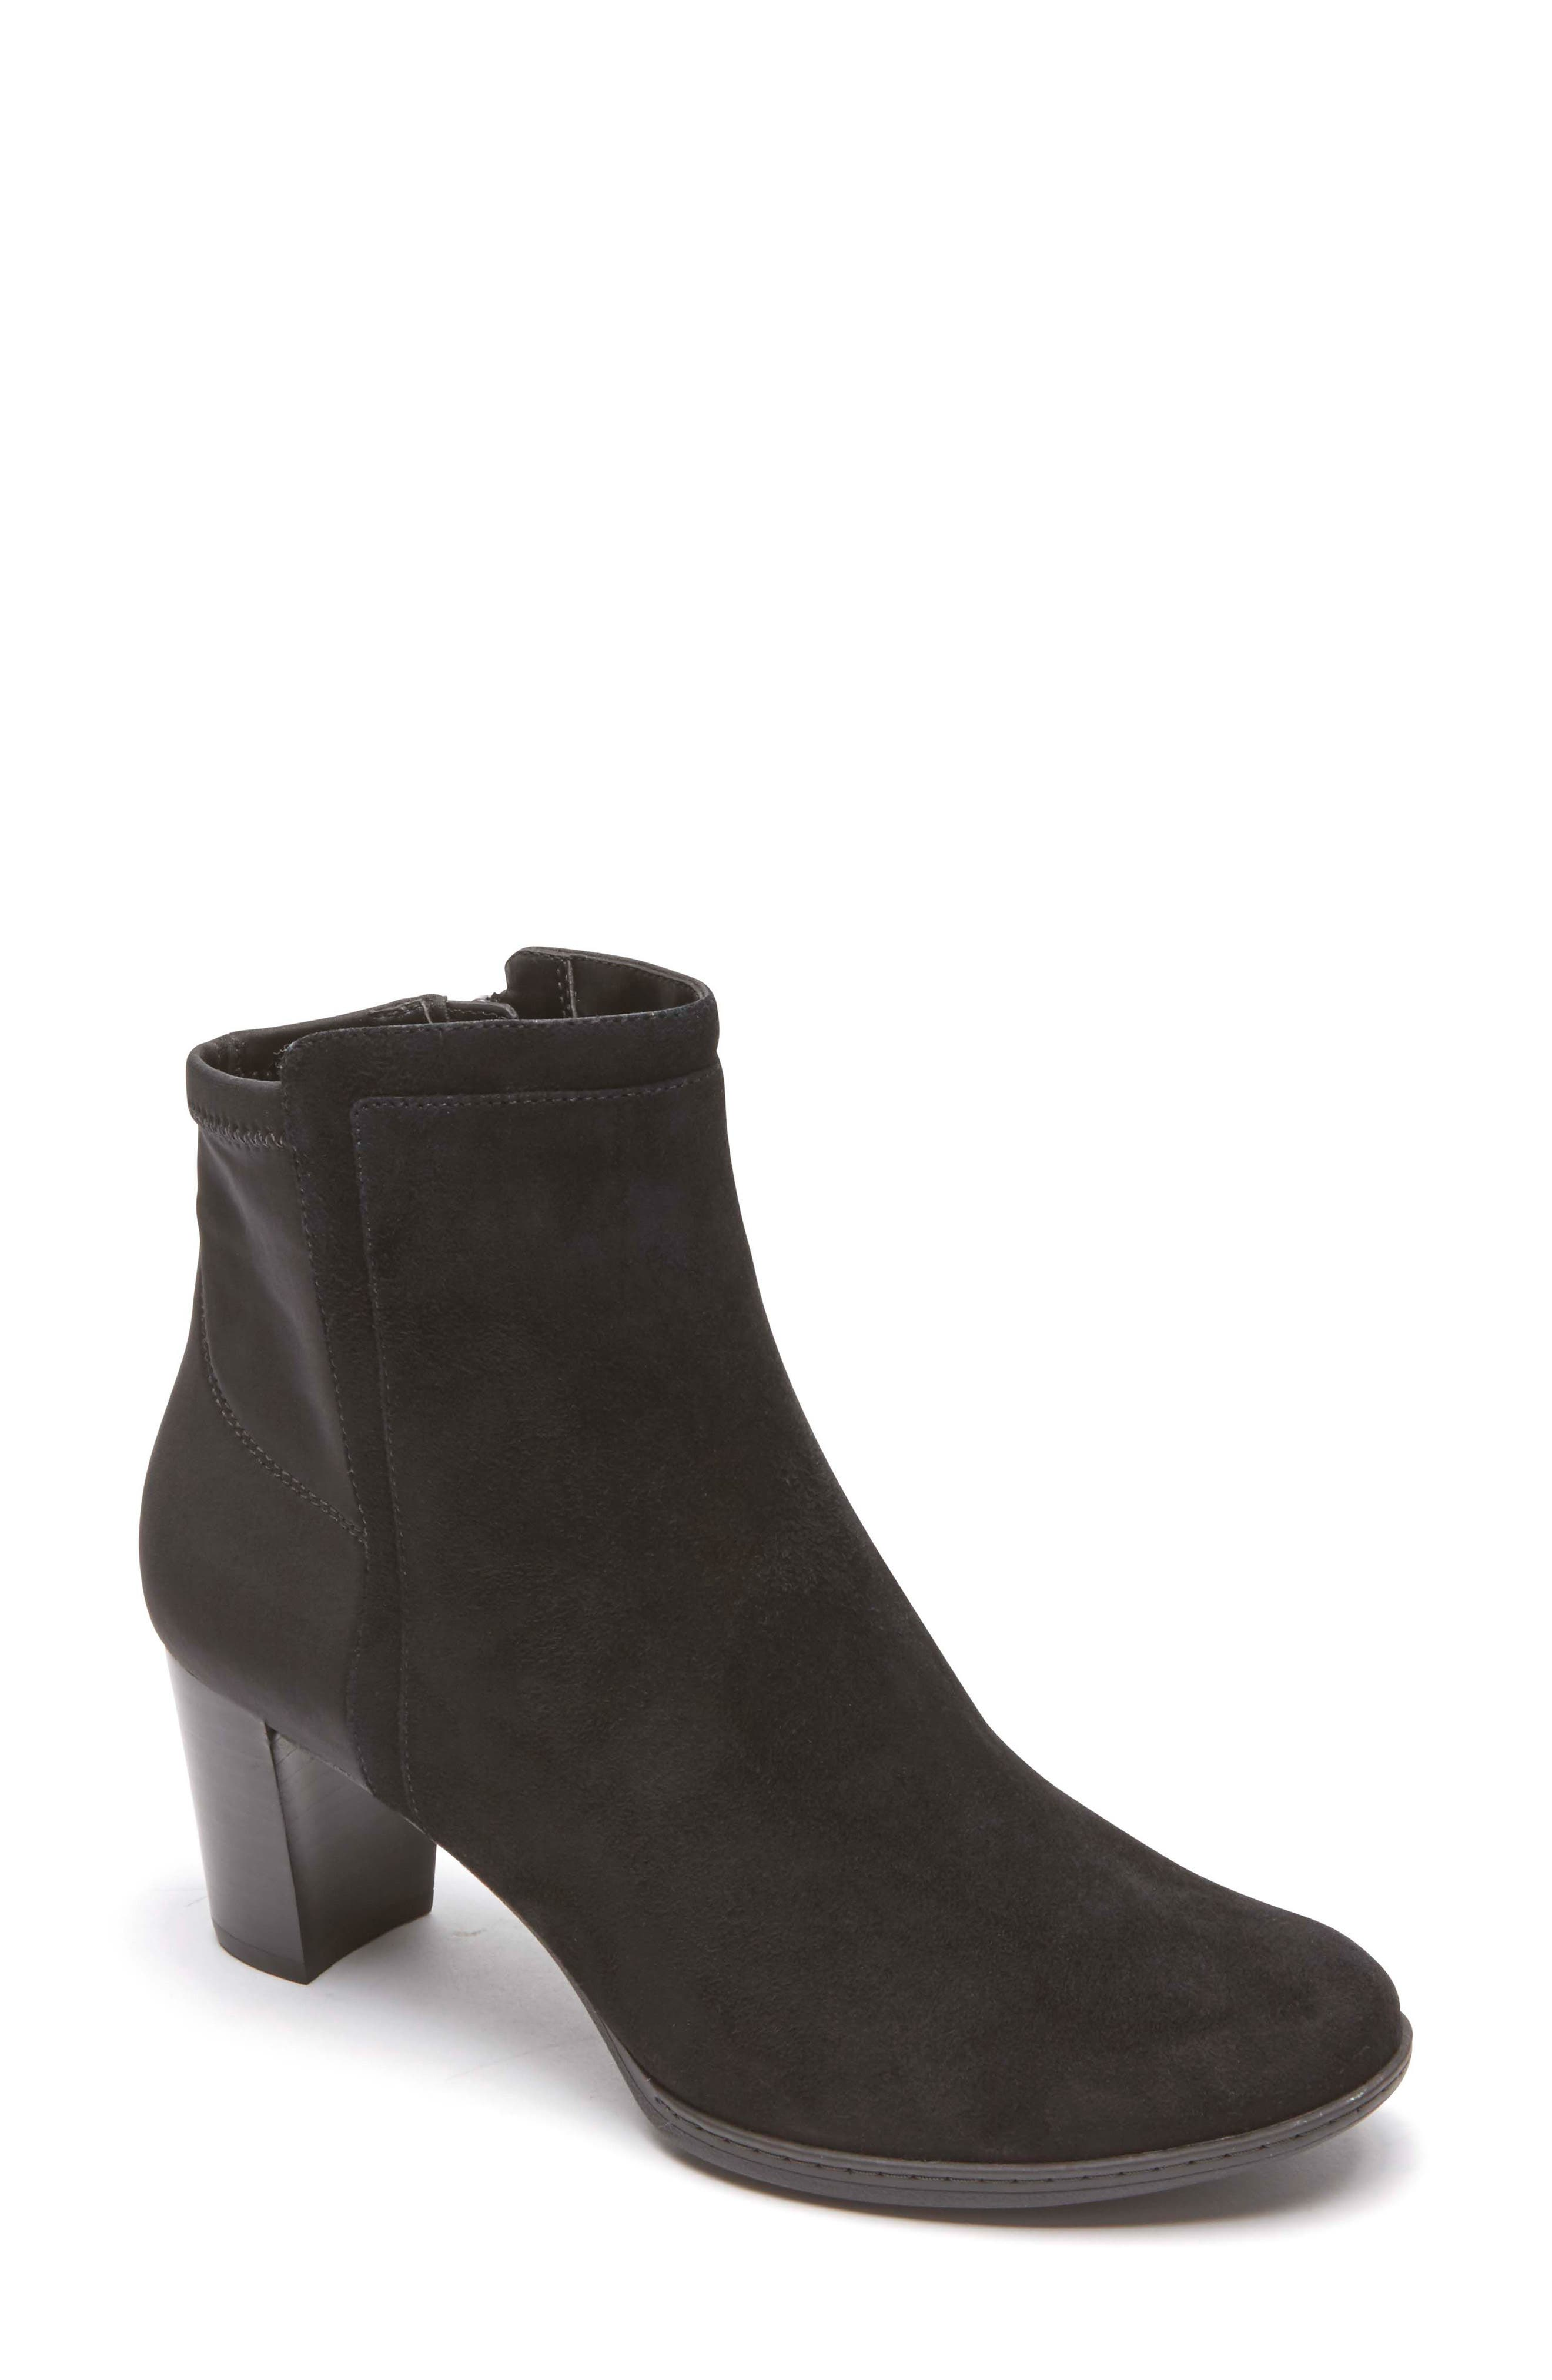 Chaya Bootie,                             Main thumbnail 1, color,                             Black Suede